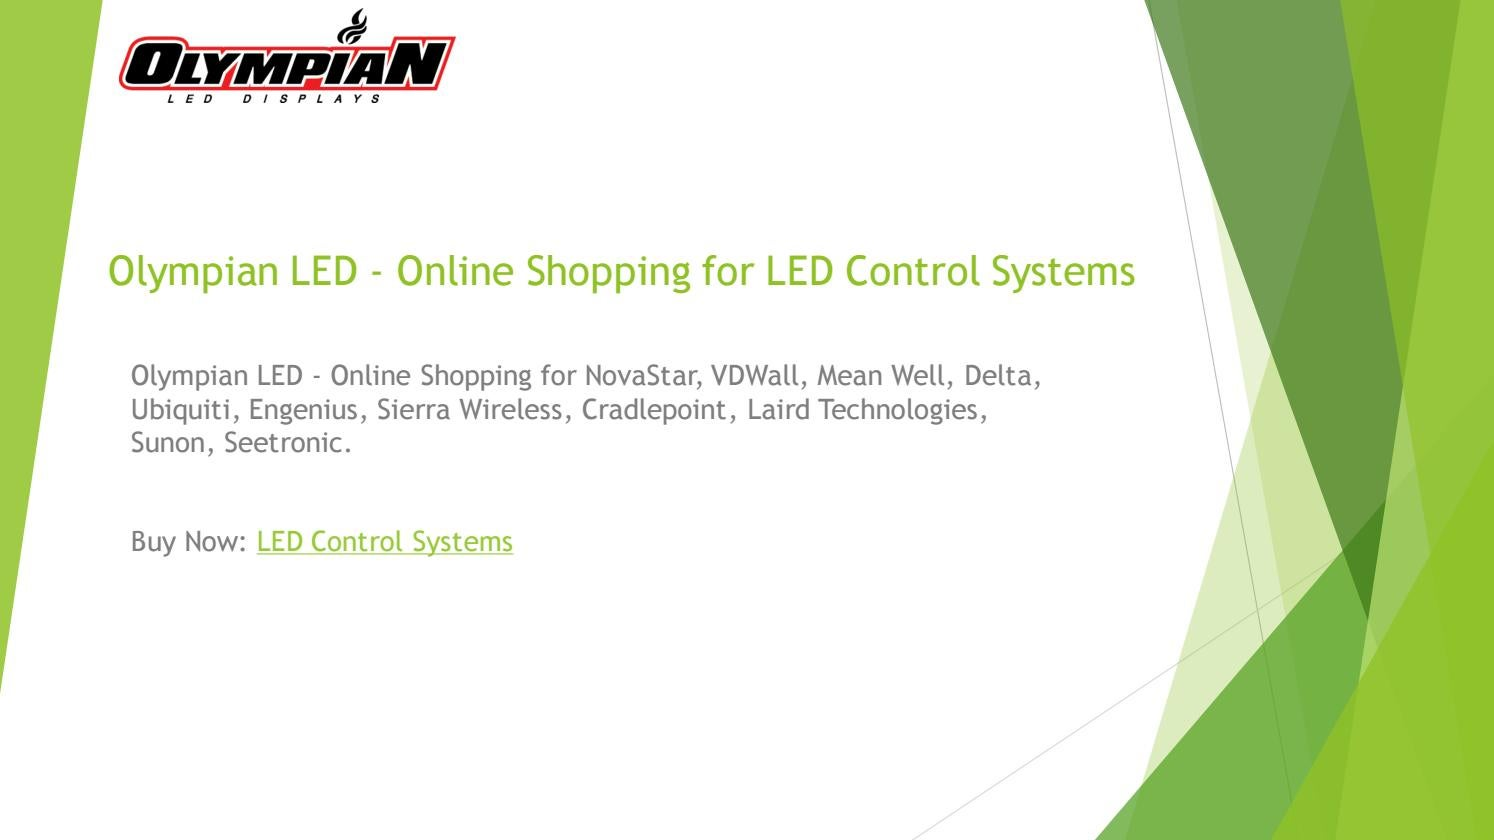 Led Online Shop Olympian Led Online Shopping For Led Control Systems Power